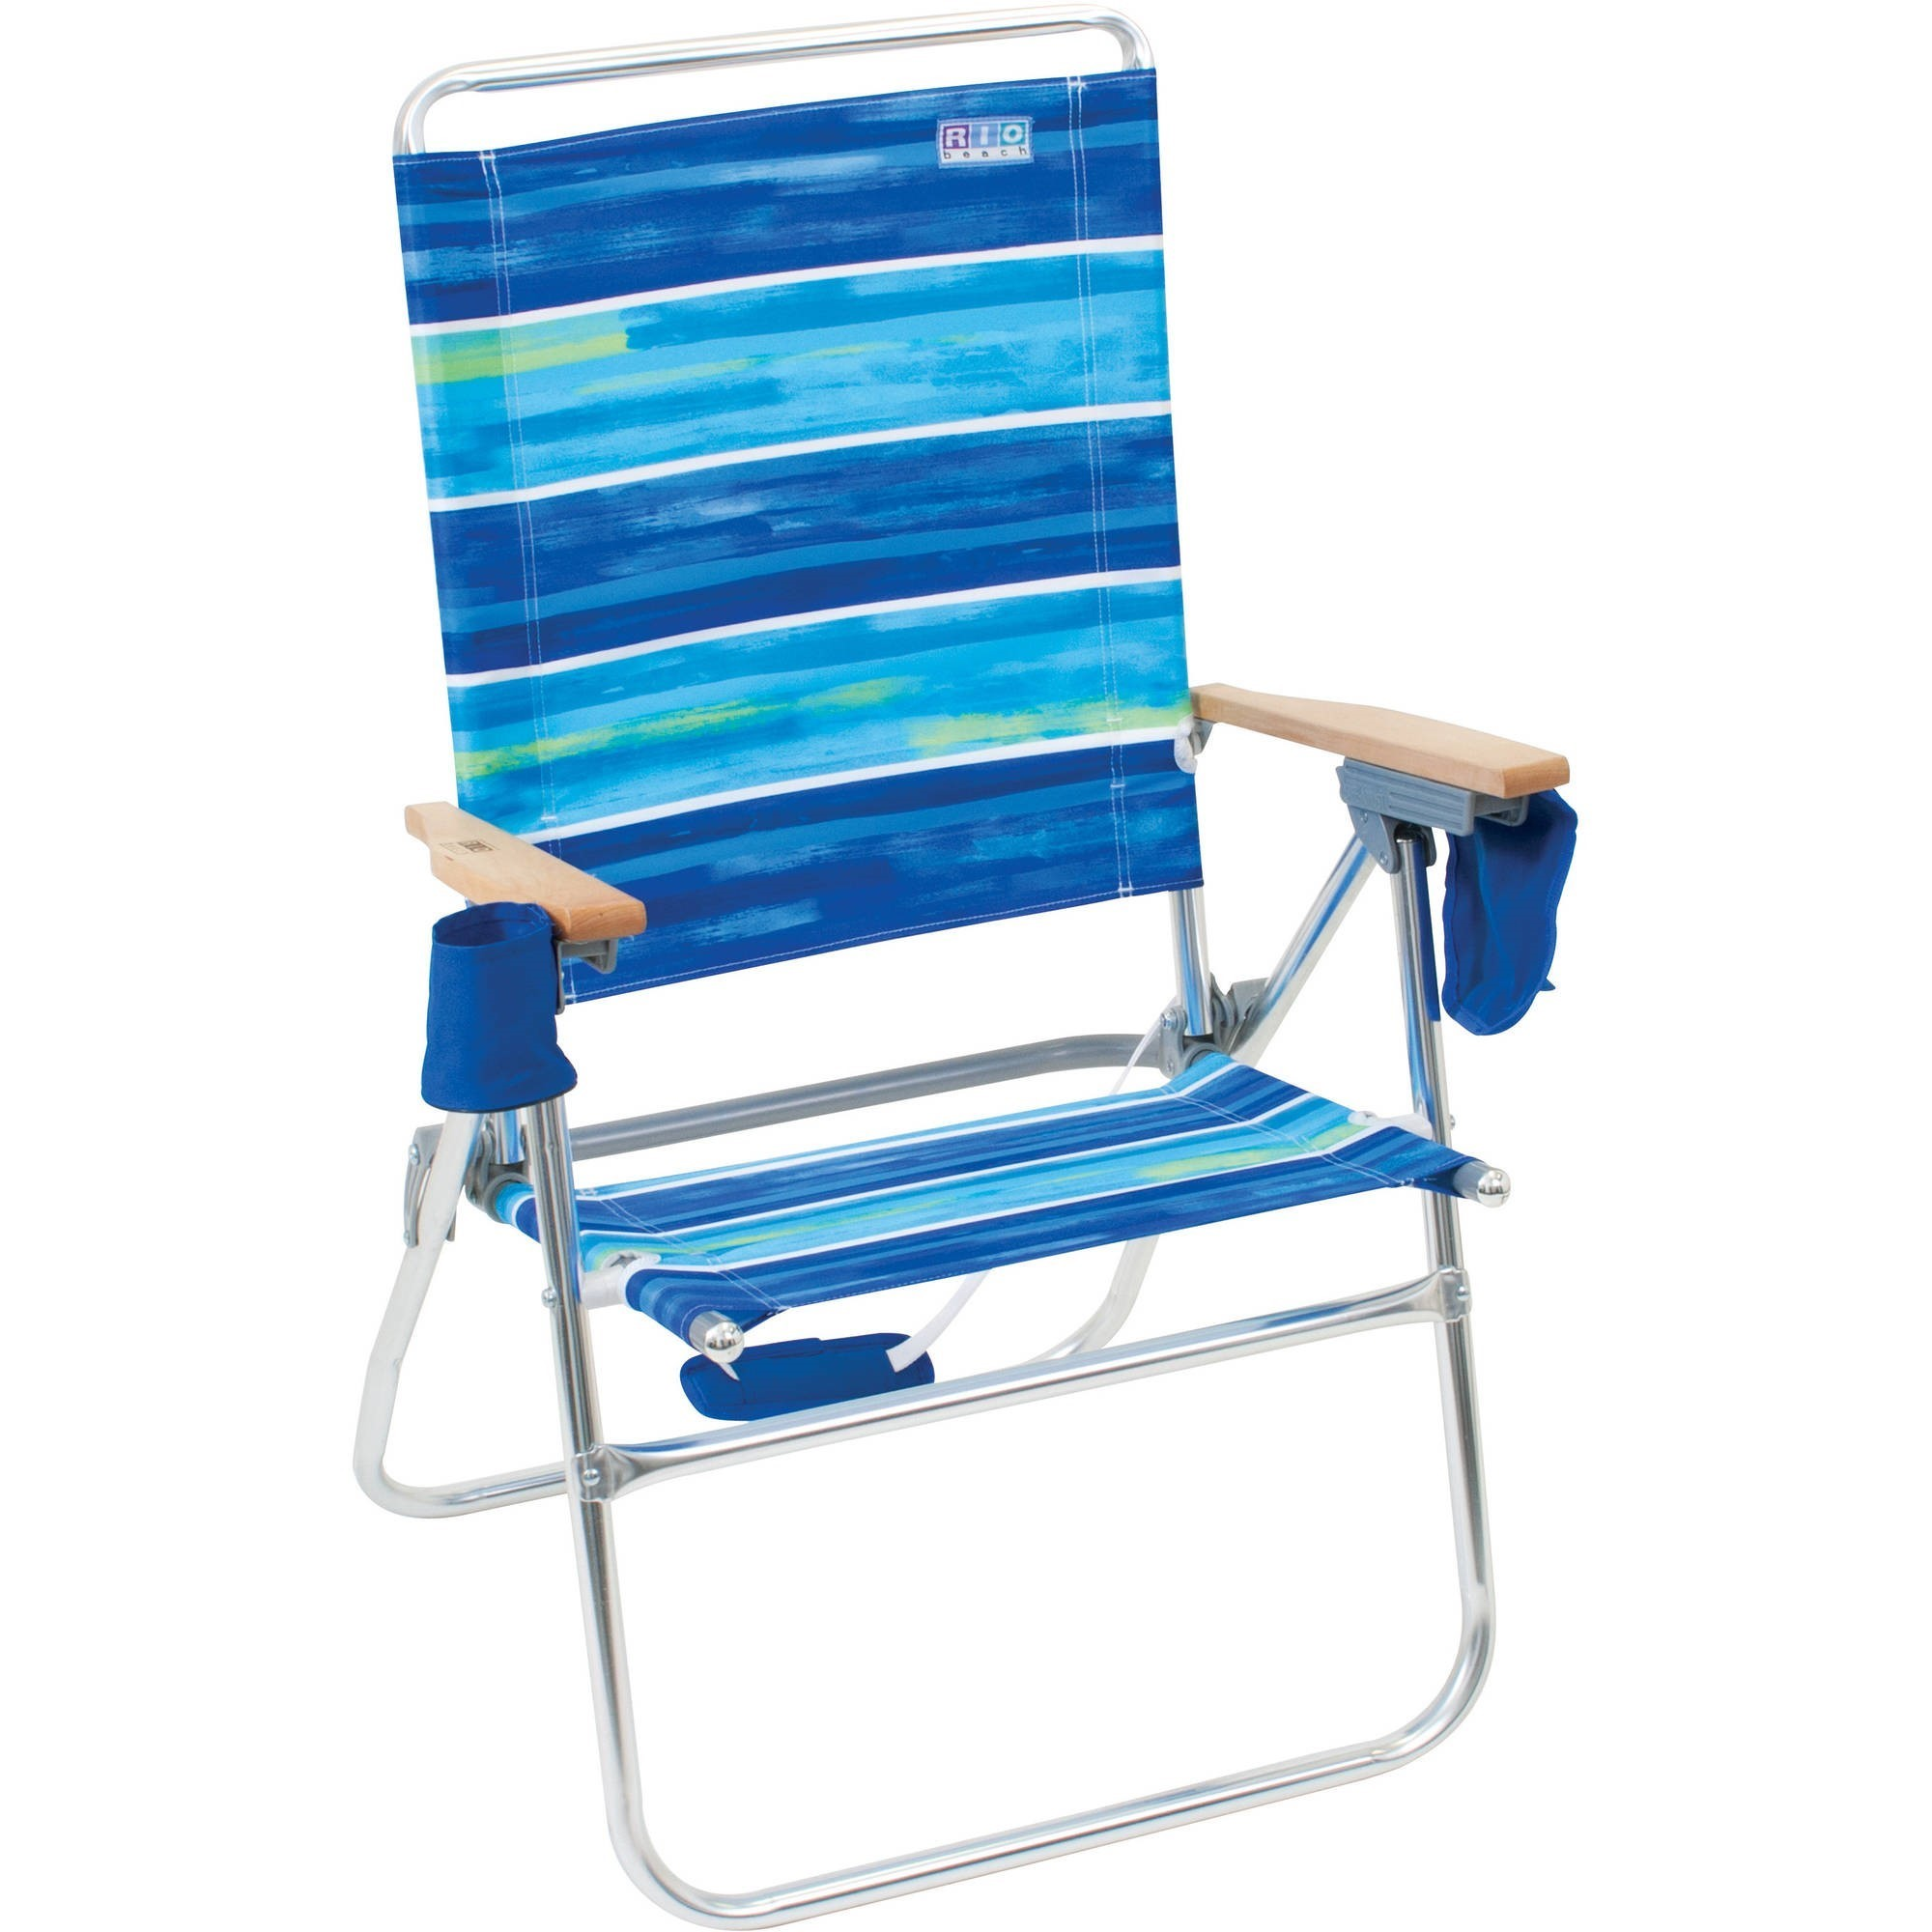 beach chair photo frame casters for chairs on carpet rio hi boy aluminum with 17 inch seat height walmart com